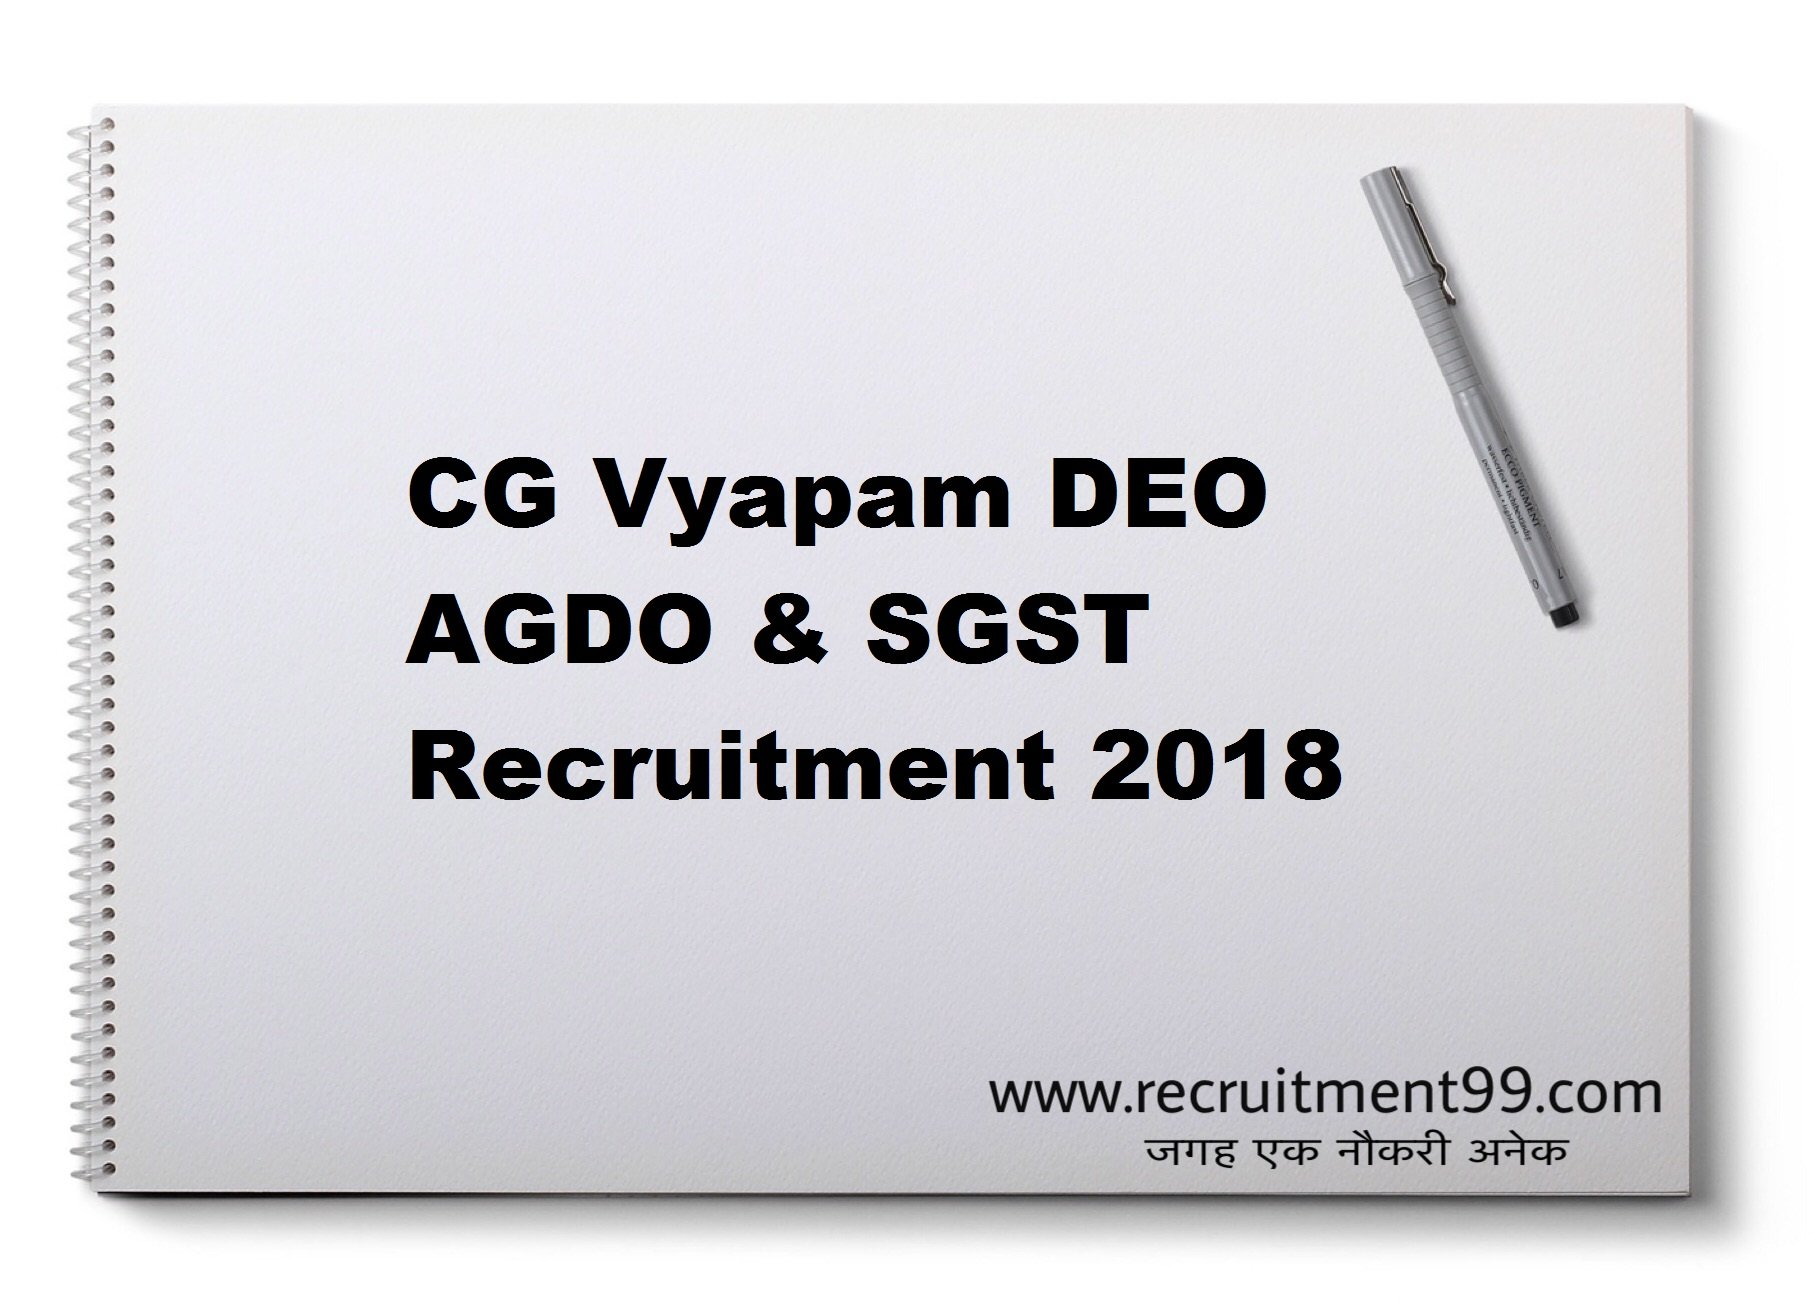 CG Vyapam DEO AGDO & SGST Recruitment Admit Card Result 2018